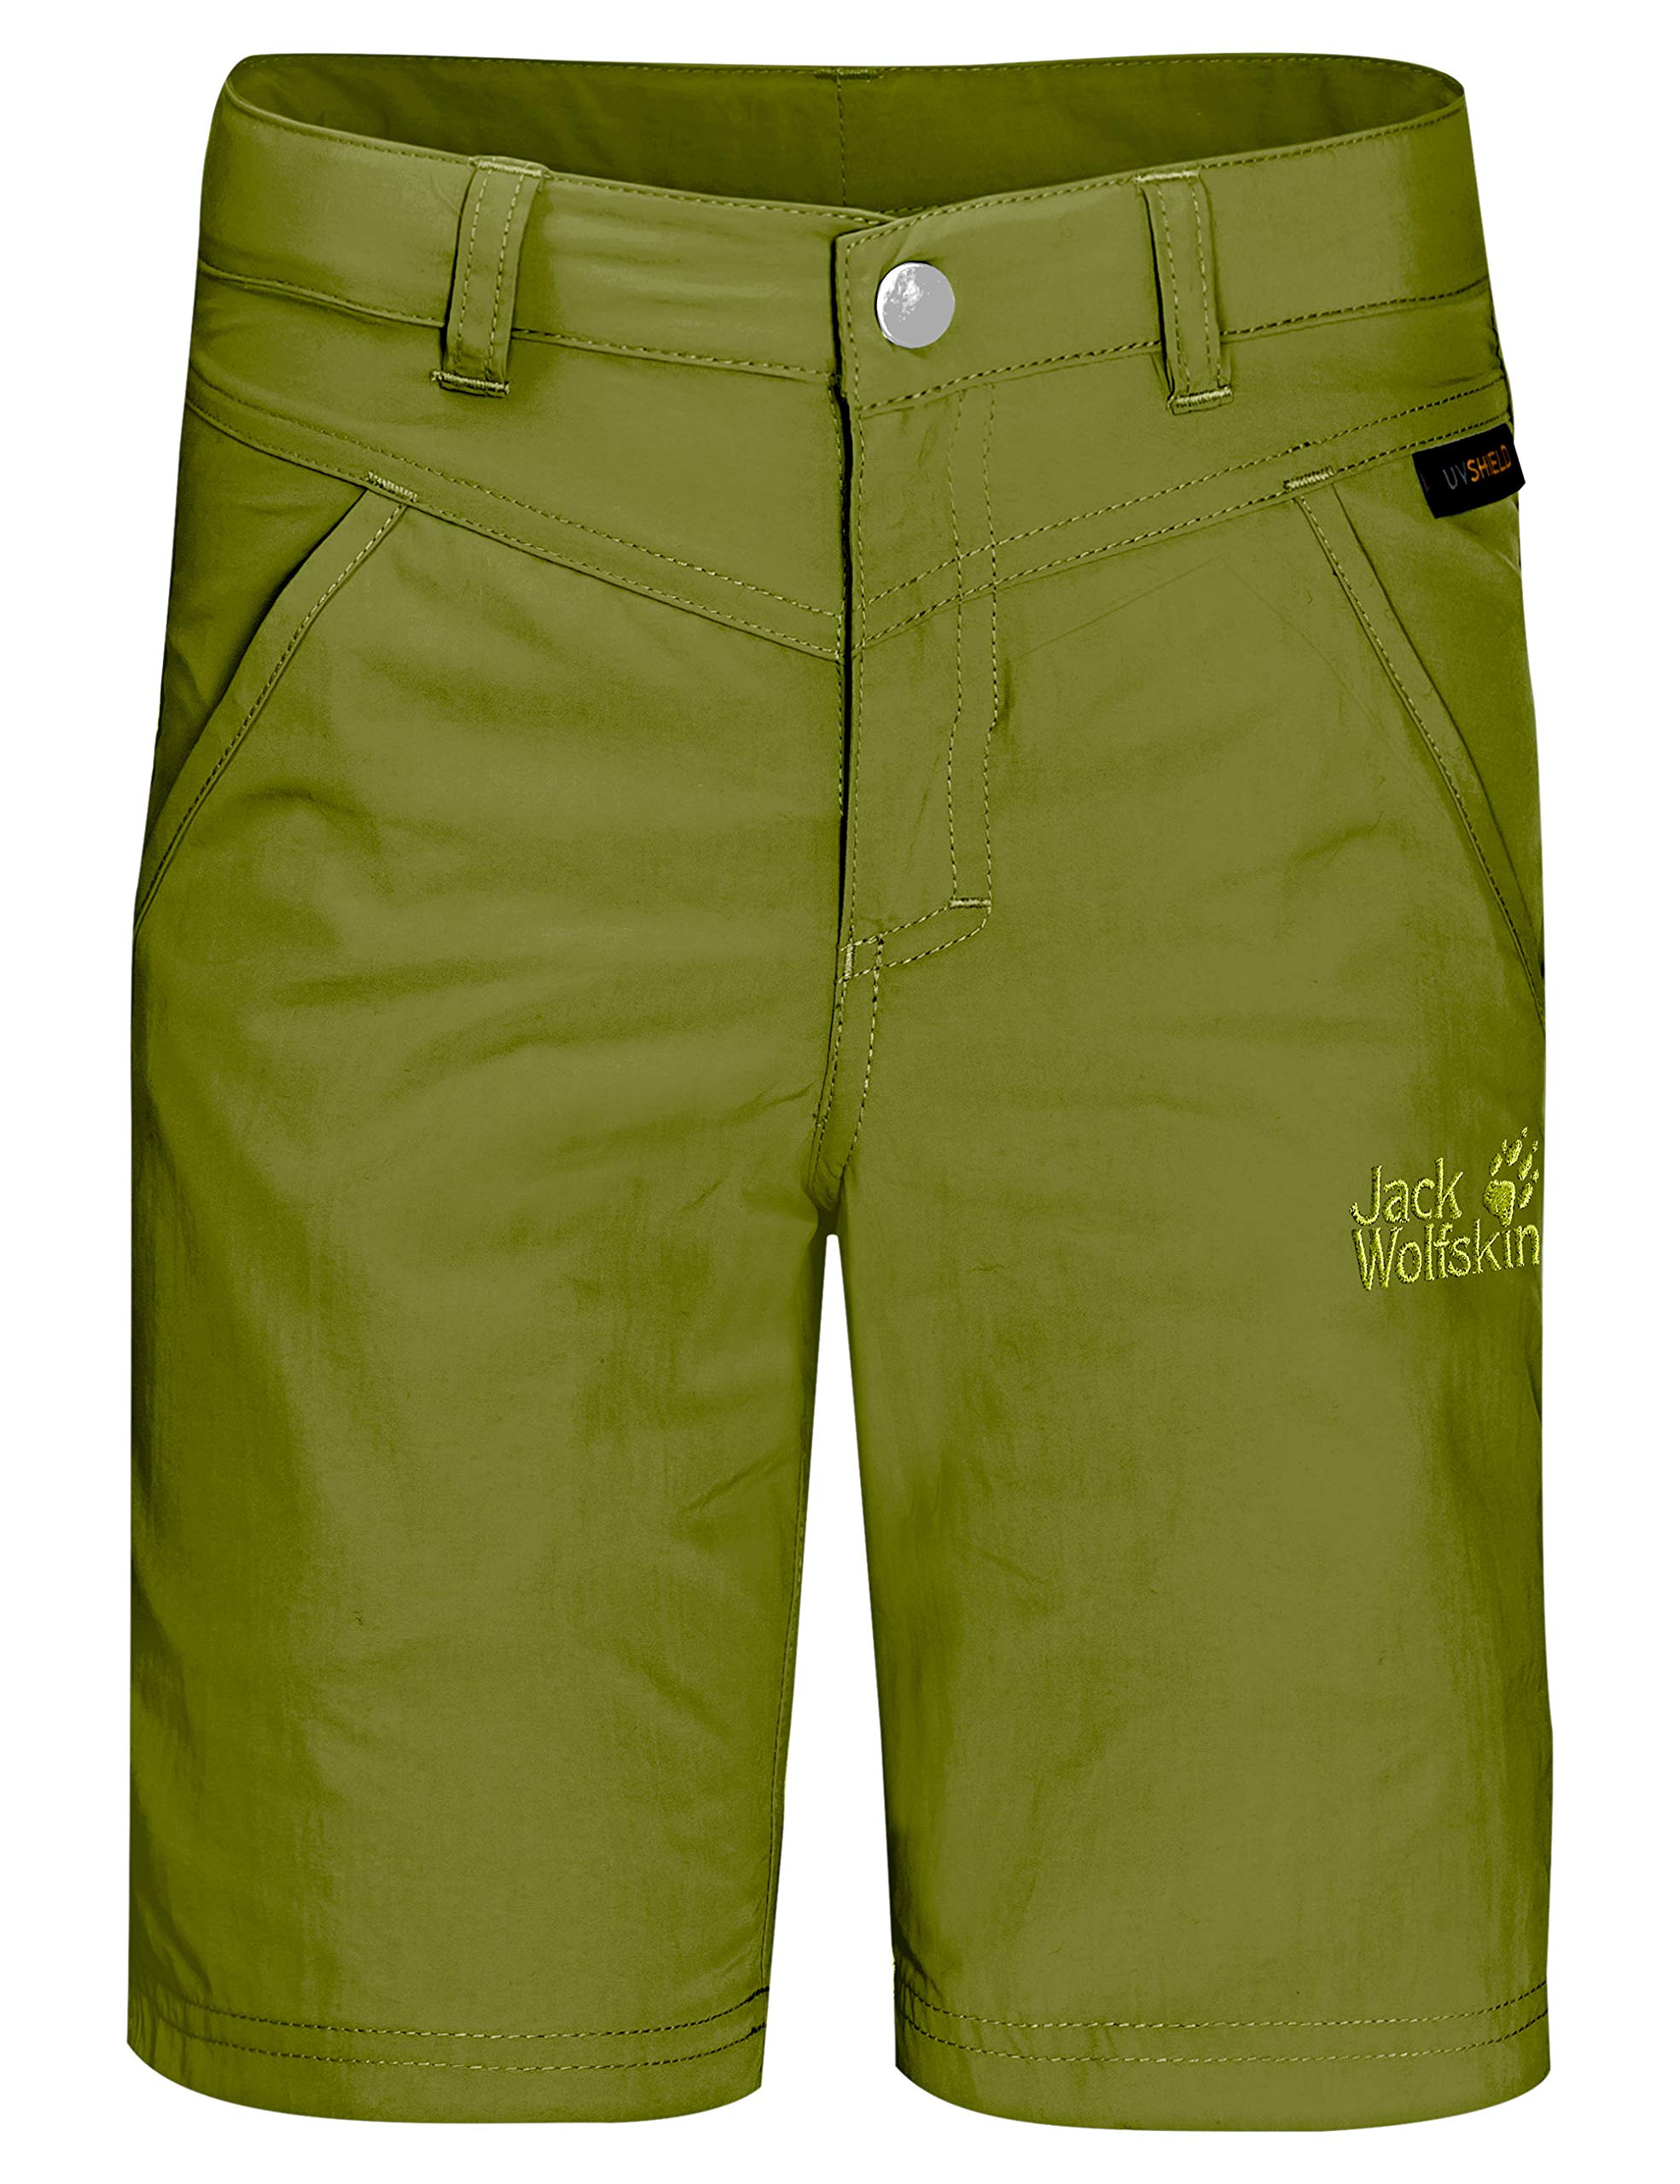 Jack Wolfskin Girls Sun Shorts Kid's Nylon Shorts, Green Tea, 140 (9-10 Years Old) by Jack Wolfskin